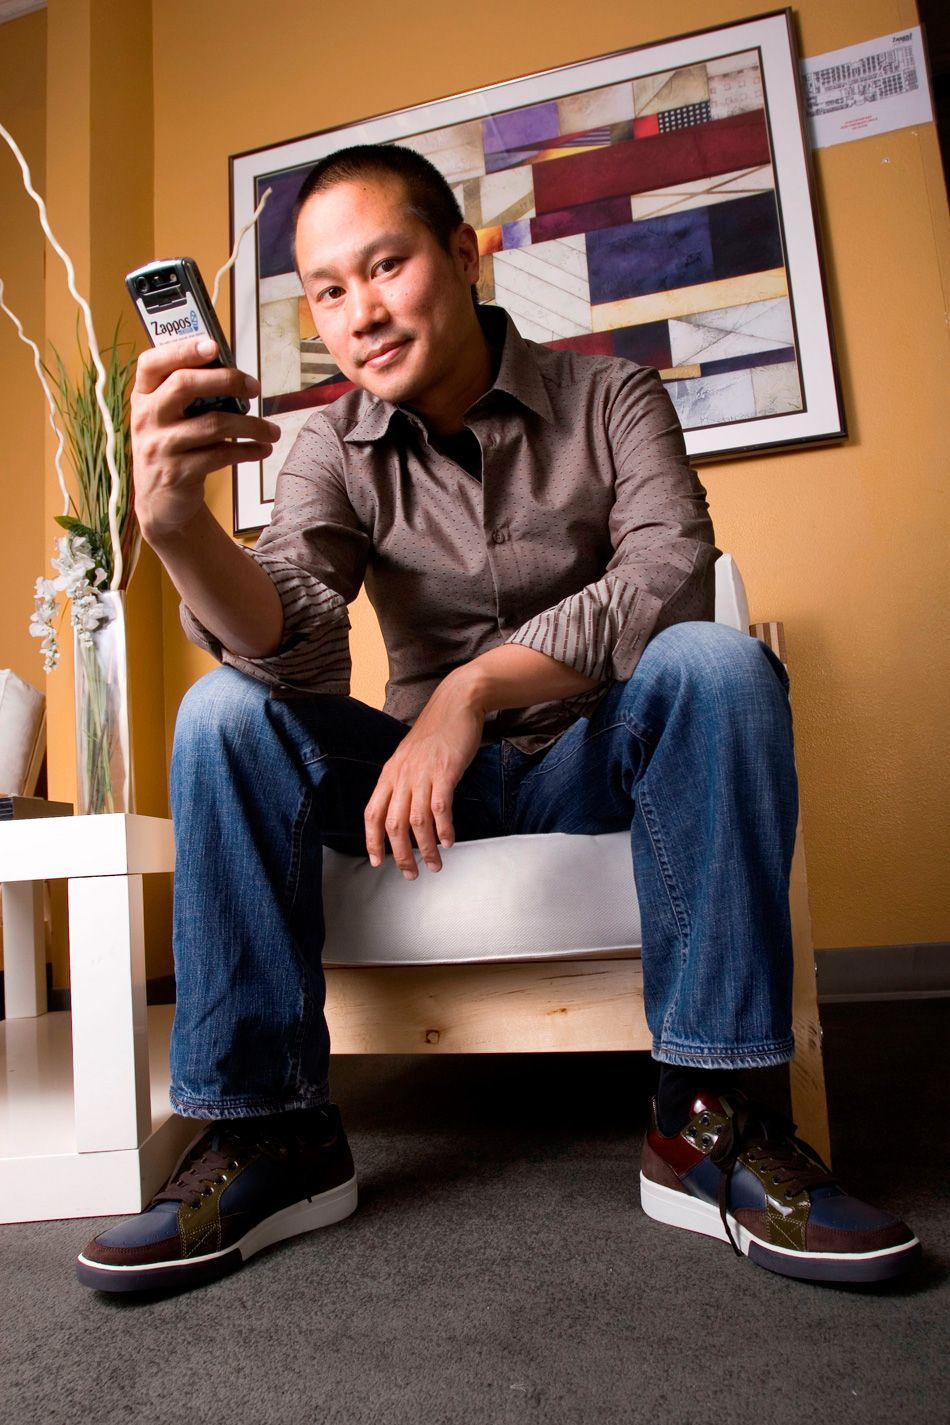 Grow Your Company as Big as Zappos 7 Tips From Tony Hsieh